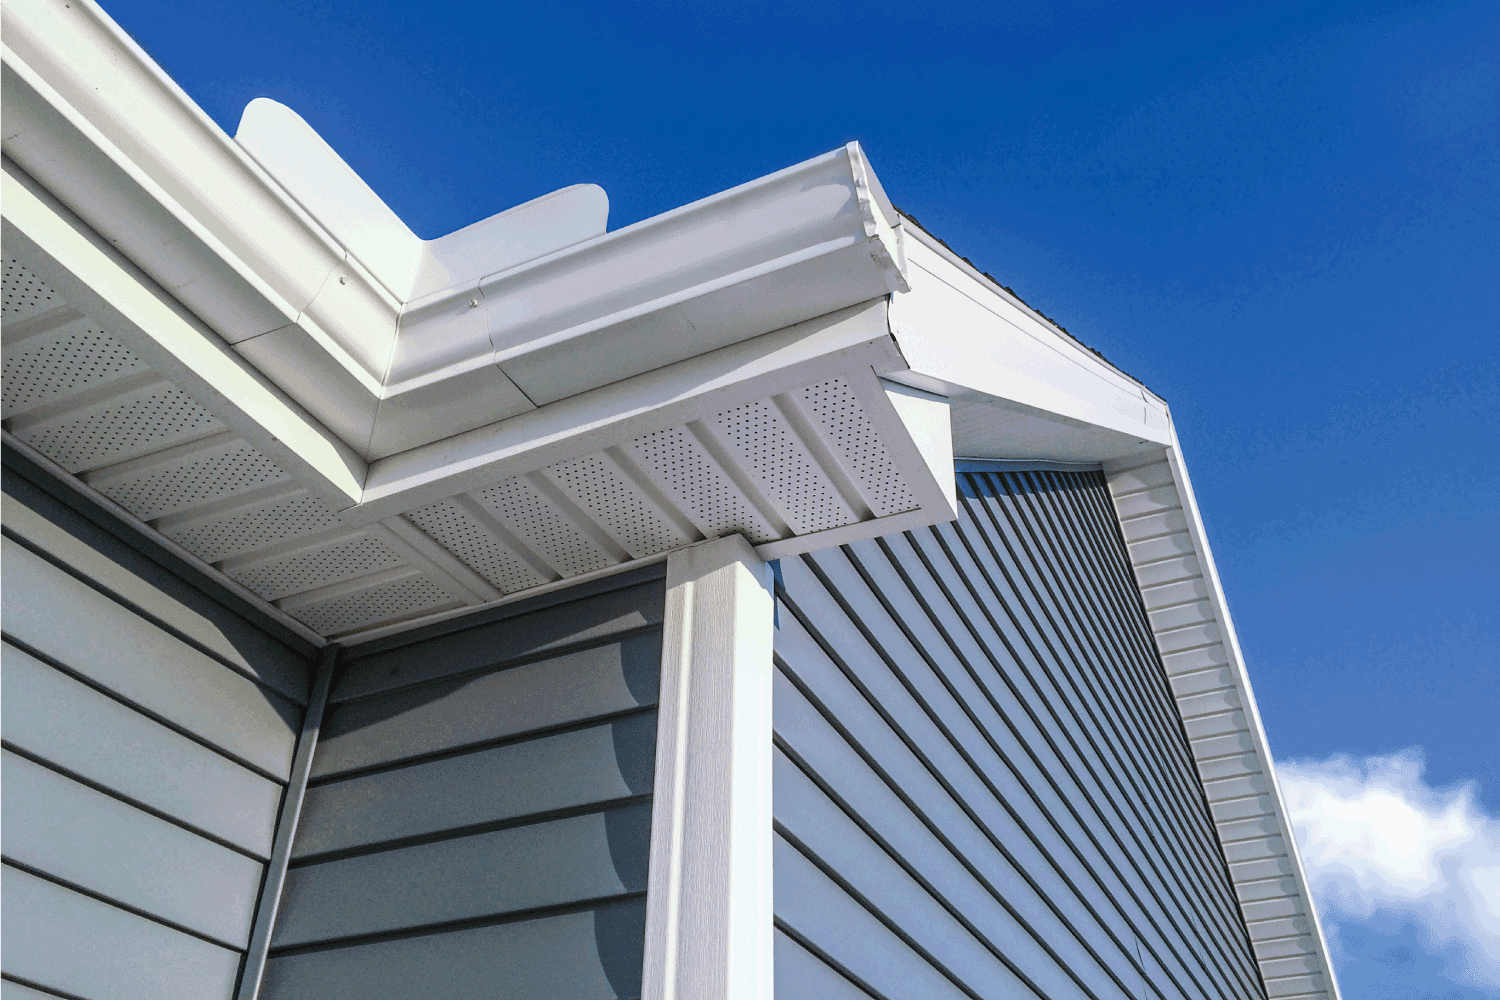 A low angle view of soffit, gutters, downspout and vinyl siding on a new home. Blue sky is in the background.